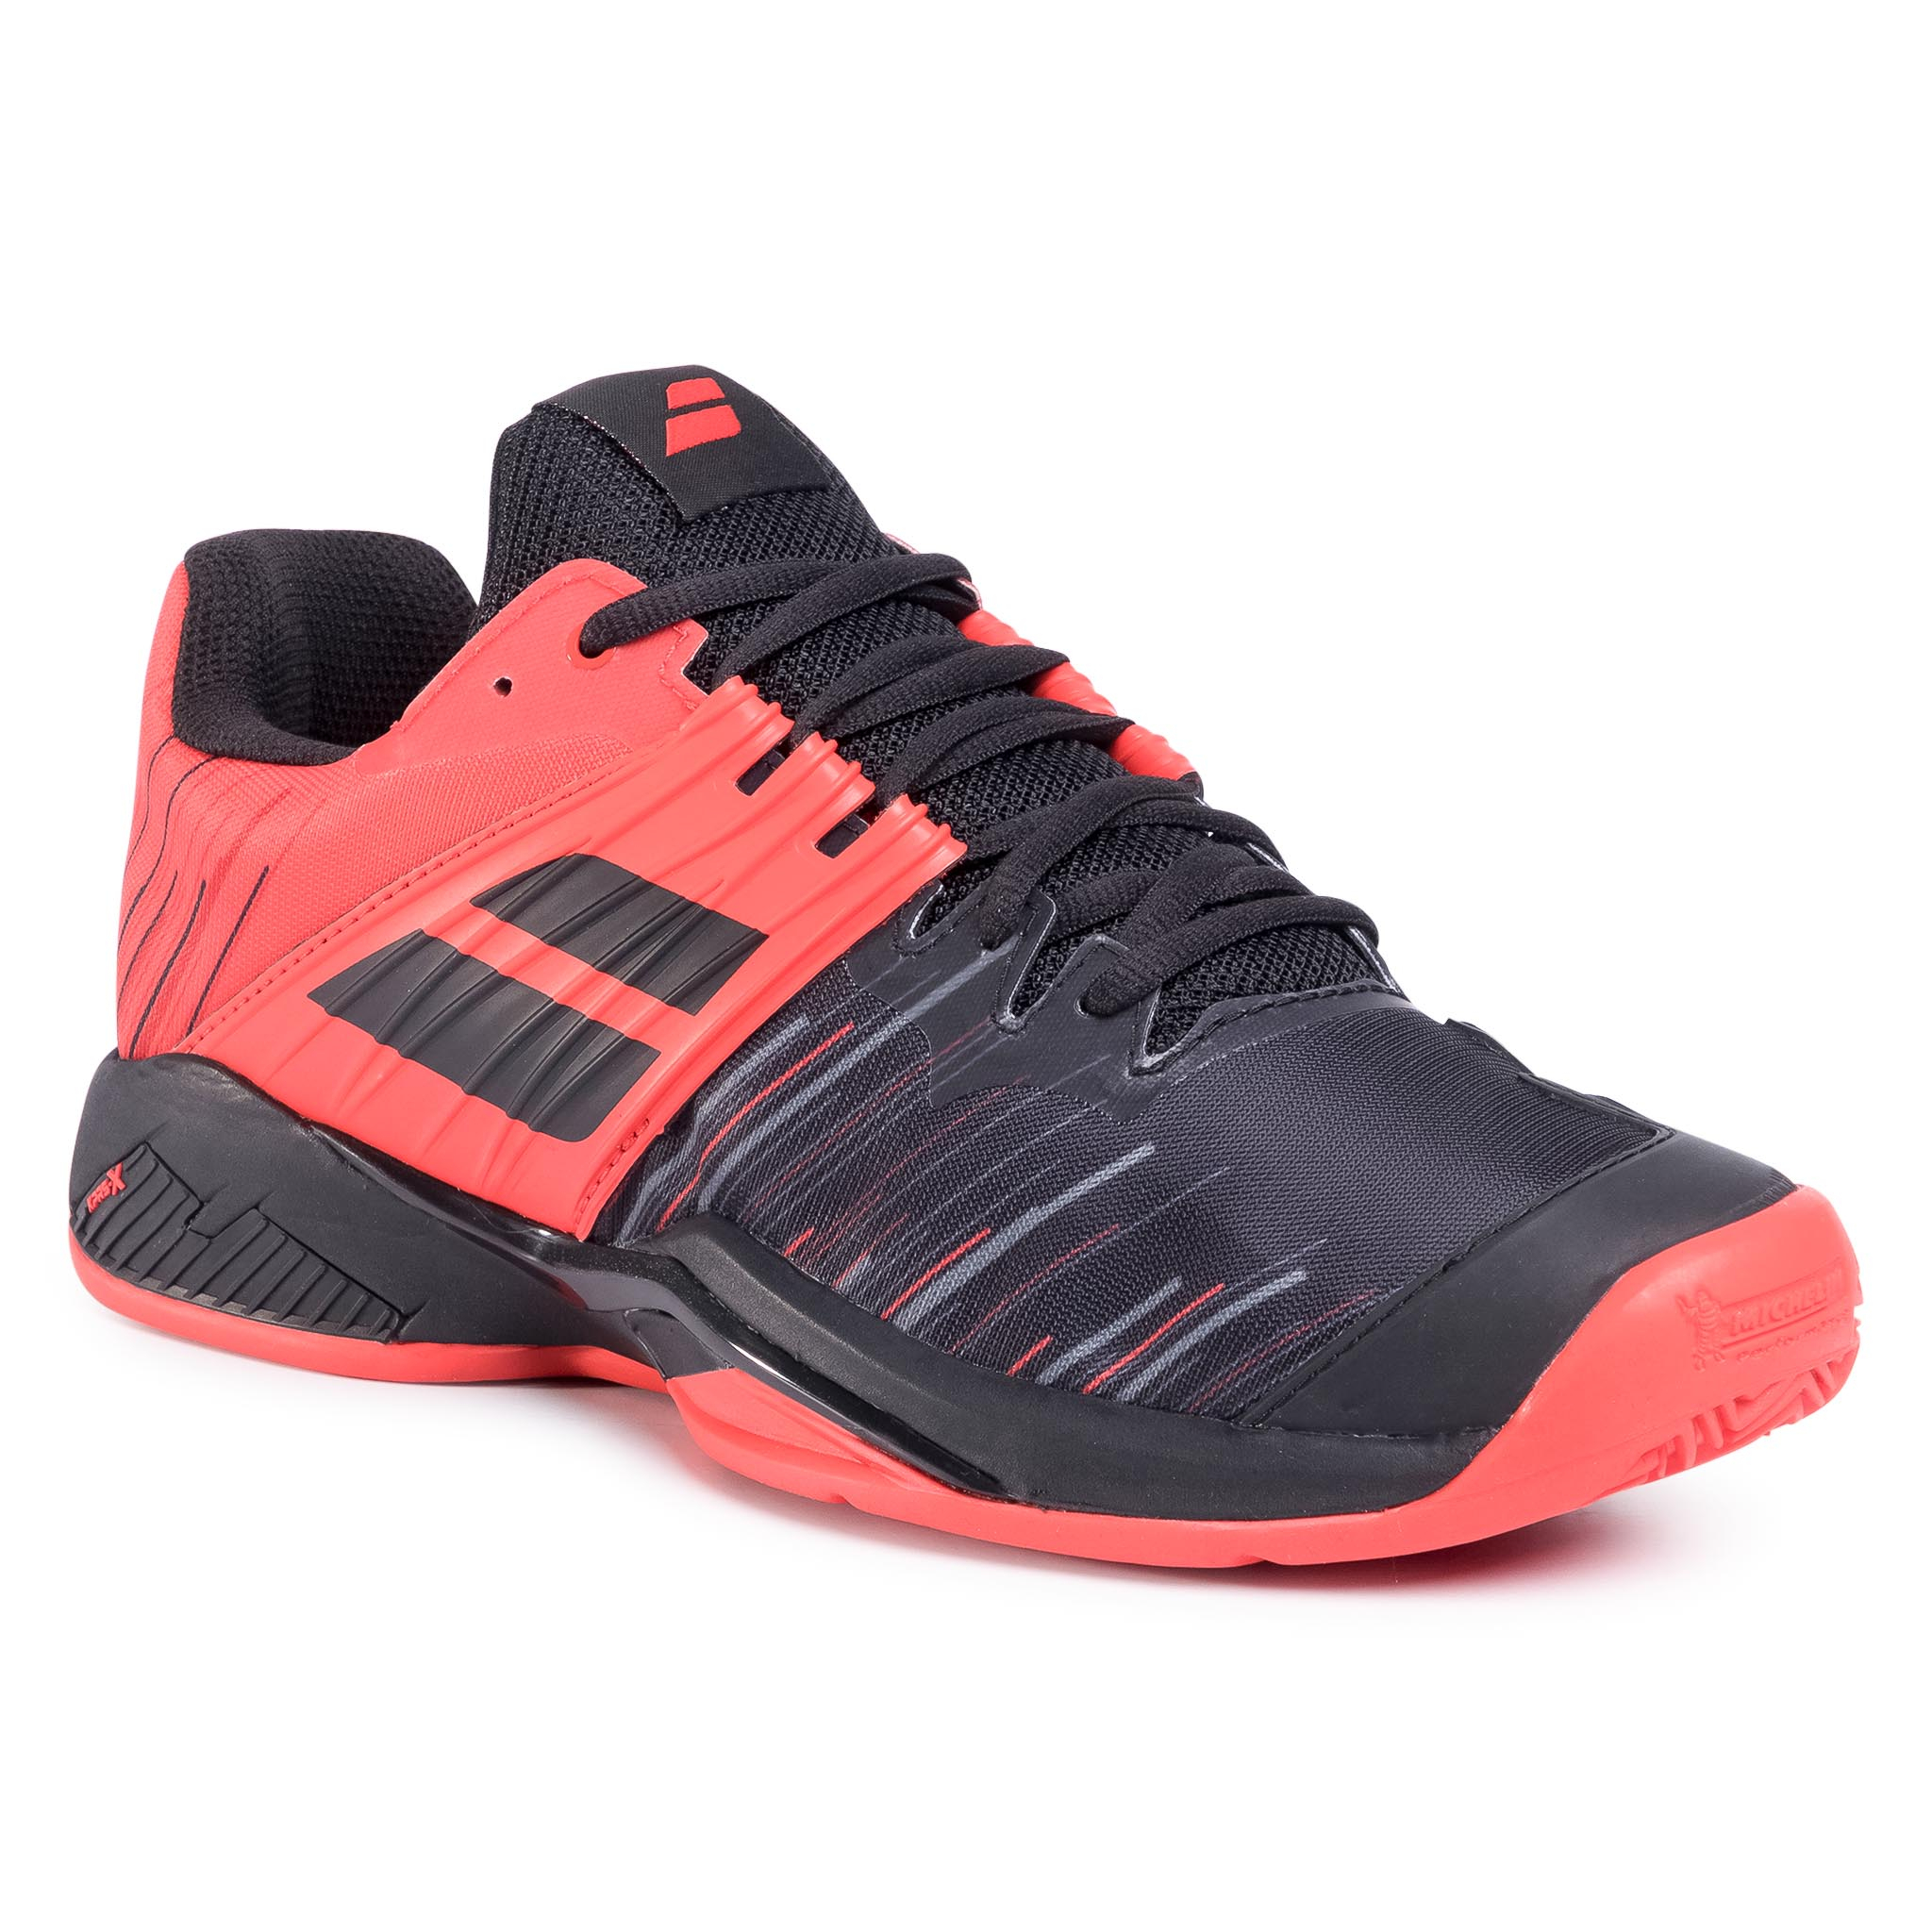 Pantofi Babolat - Propulse Fury Clay Men 30s20425 Black/Tomato Red imagine epantofi.ro 2021